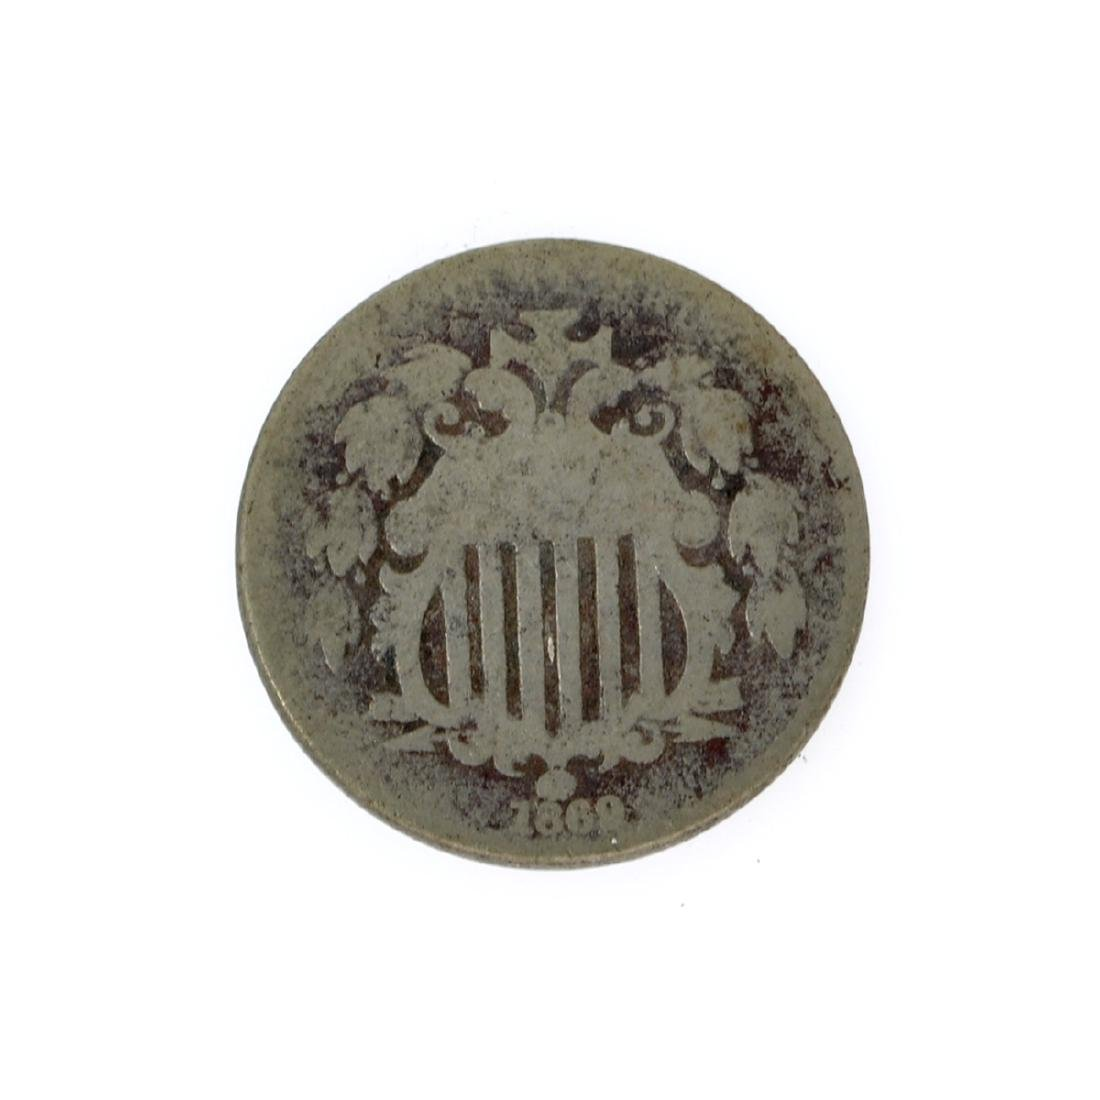 1869 Shield Nickel Coin